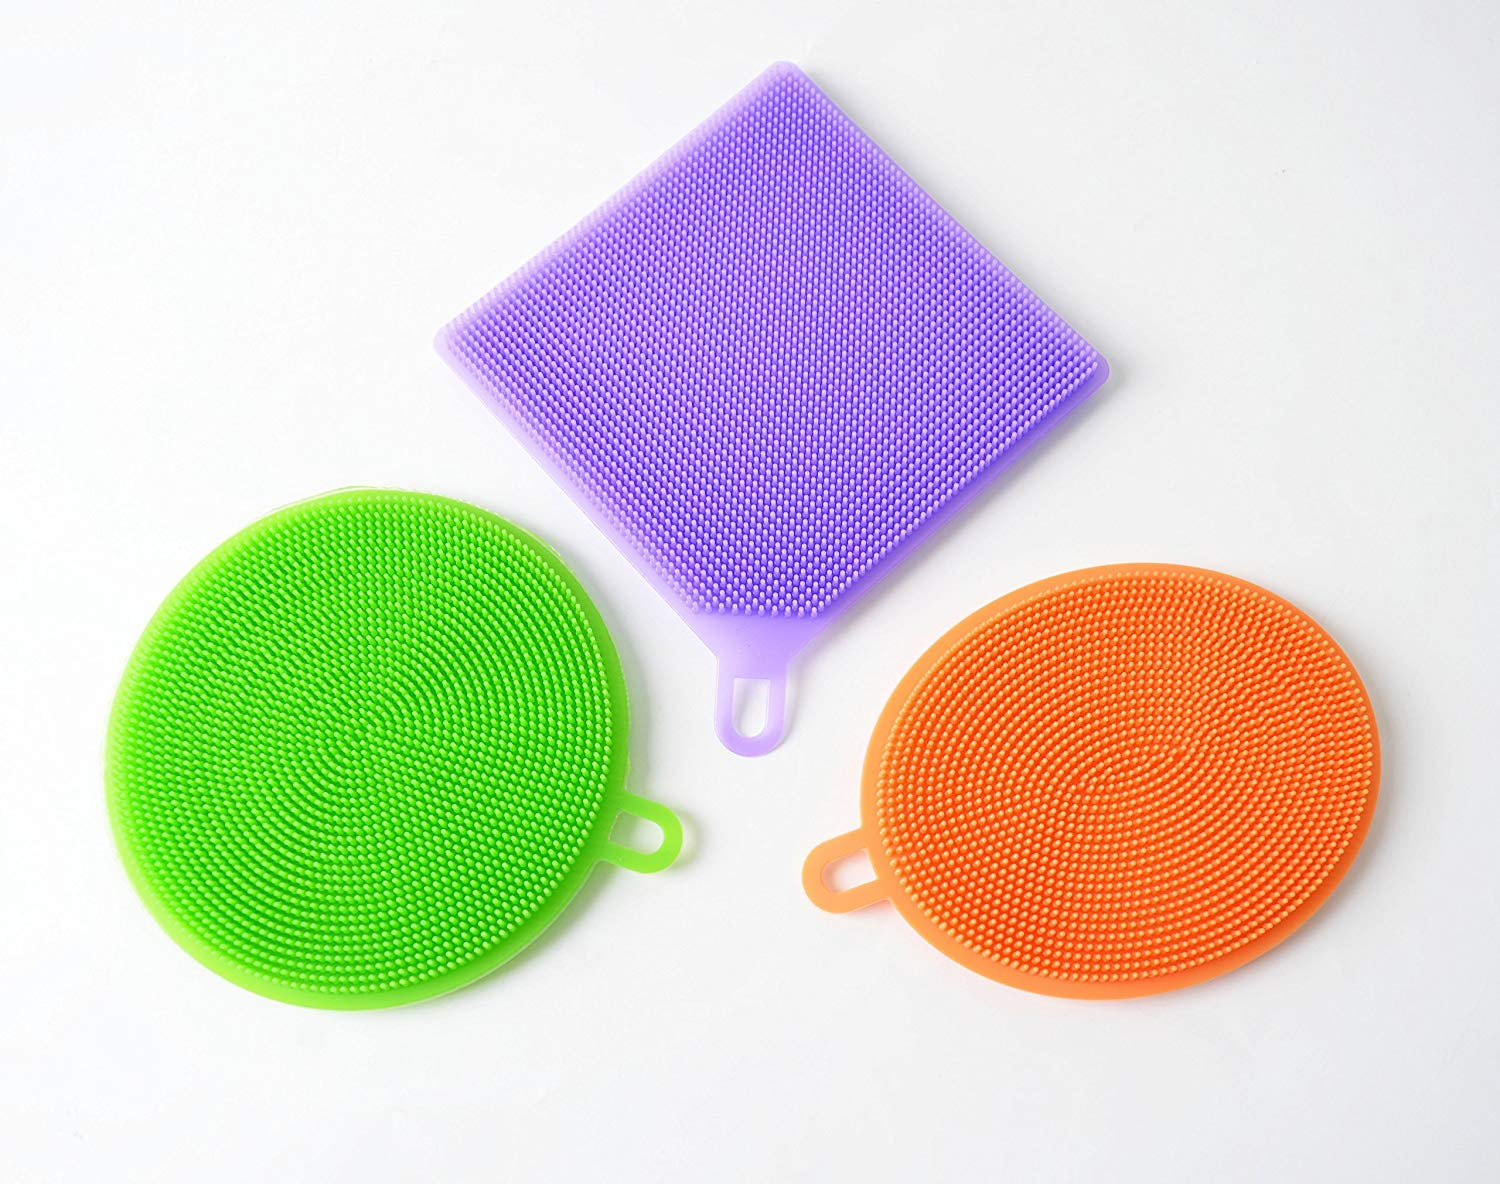 Silicone Scrubber Multipurpose Sponge - Clean Dish Wash Fruit and Vegetable - Free Kitchen Sponges - SWAY 3 Piece